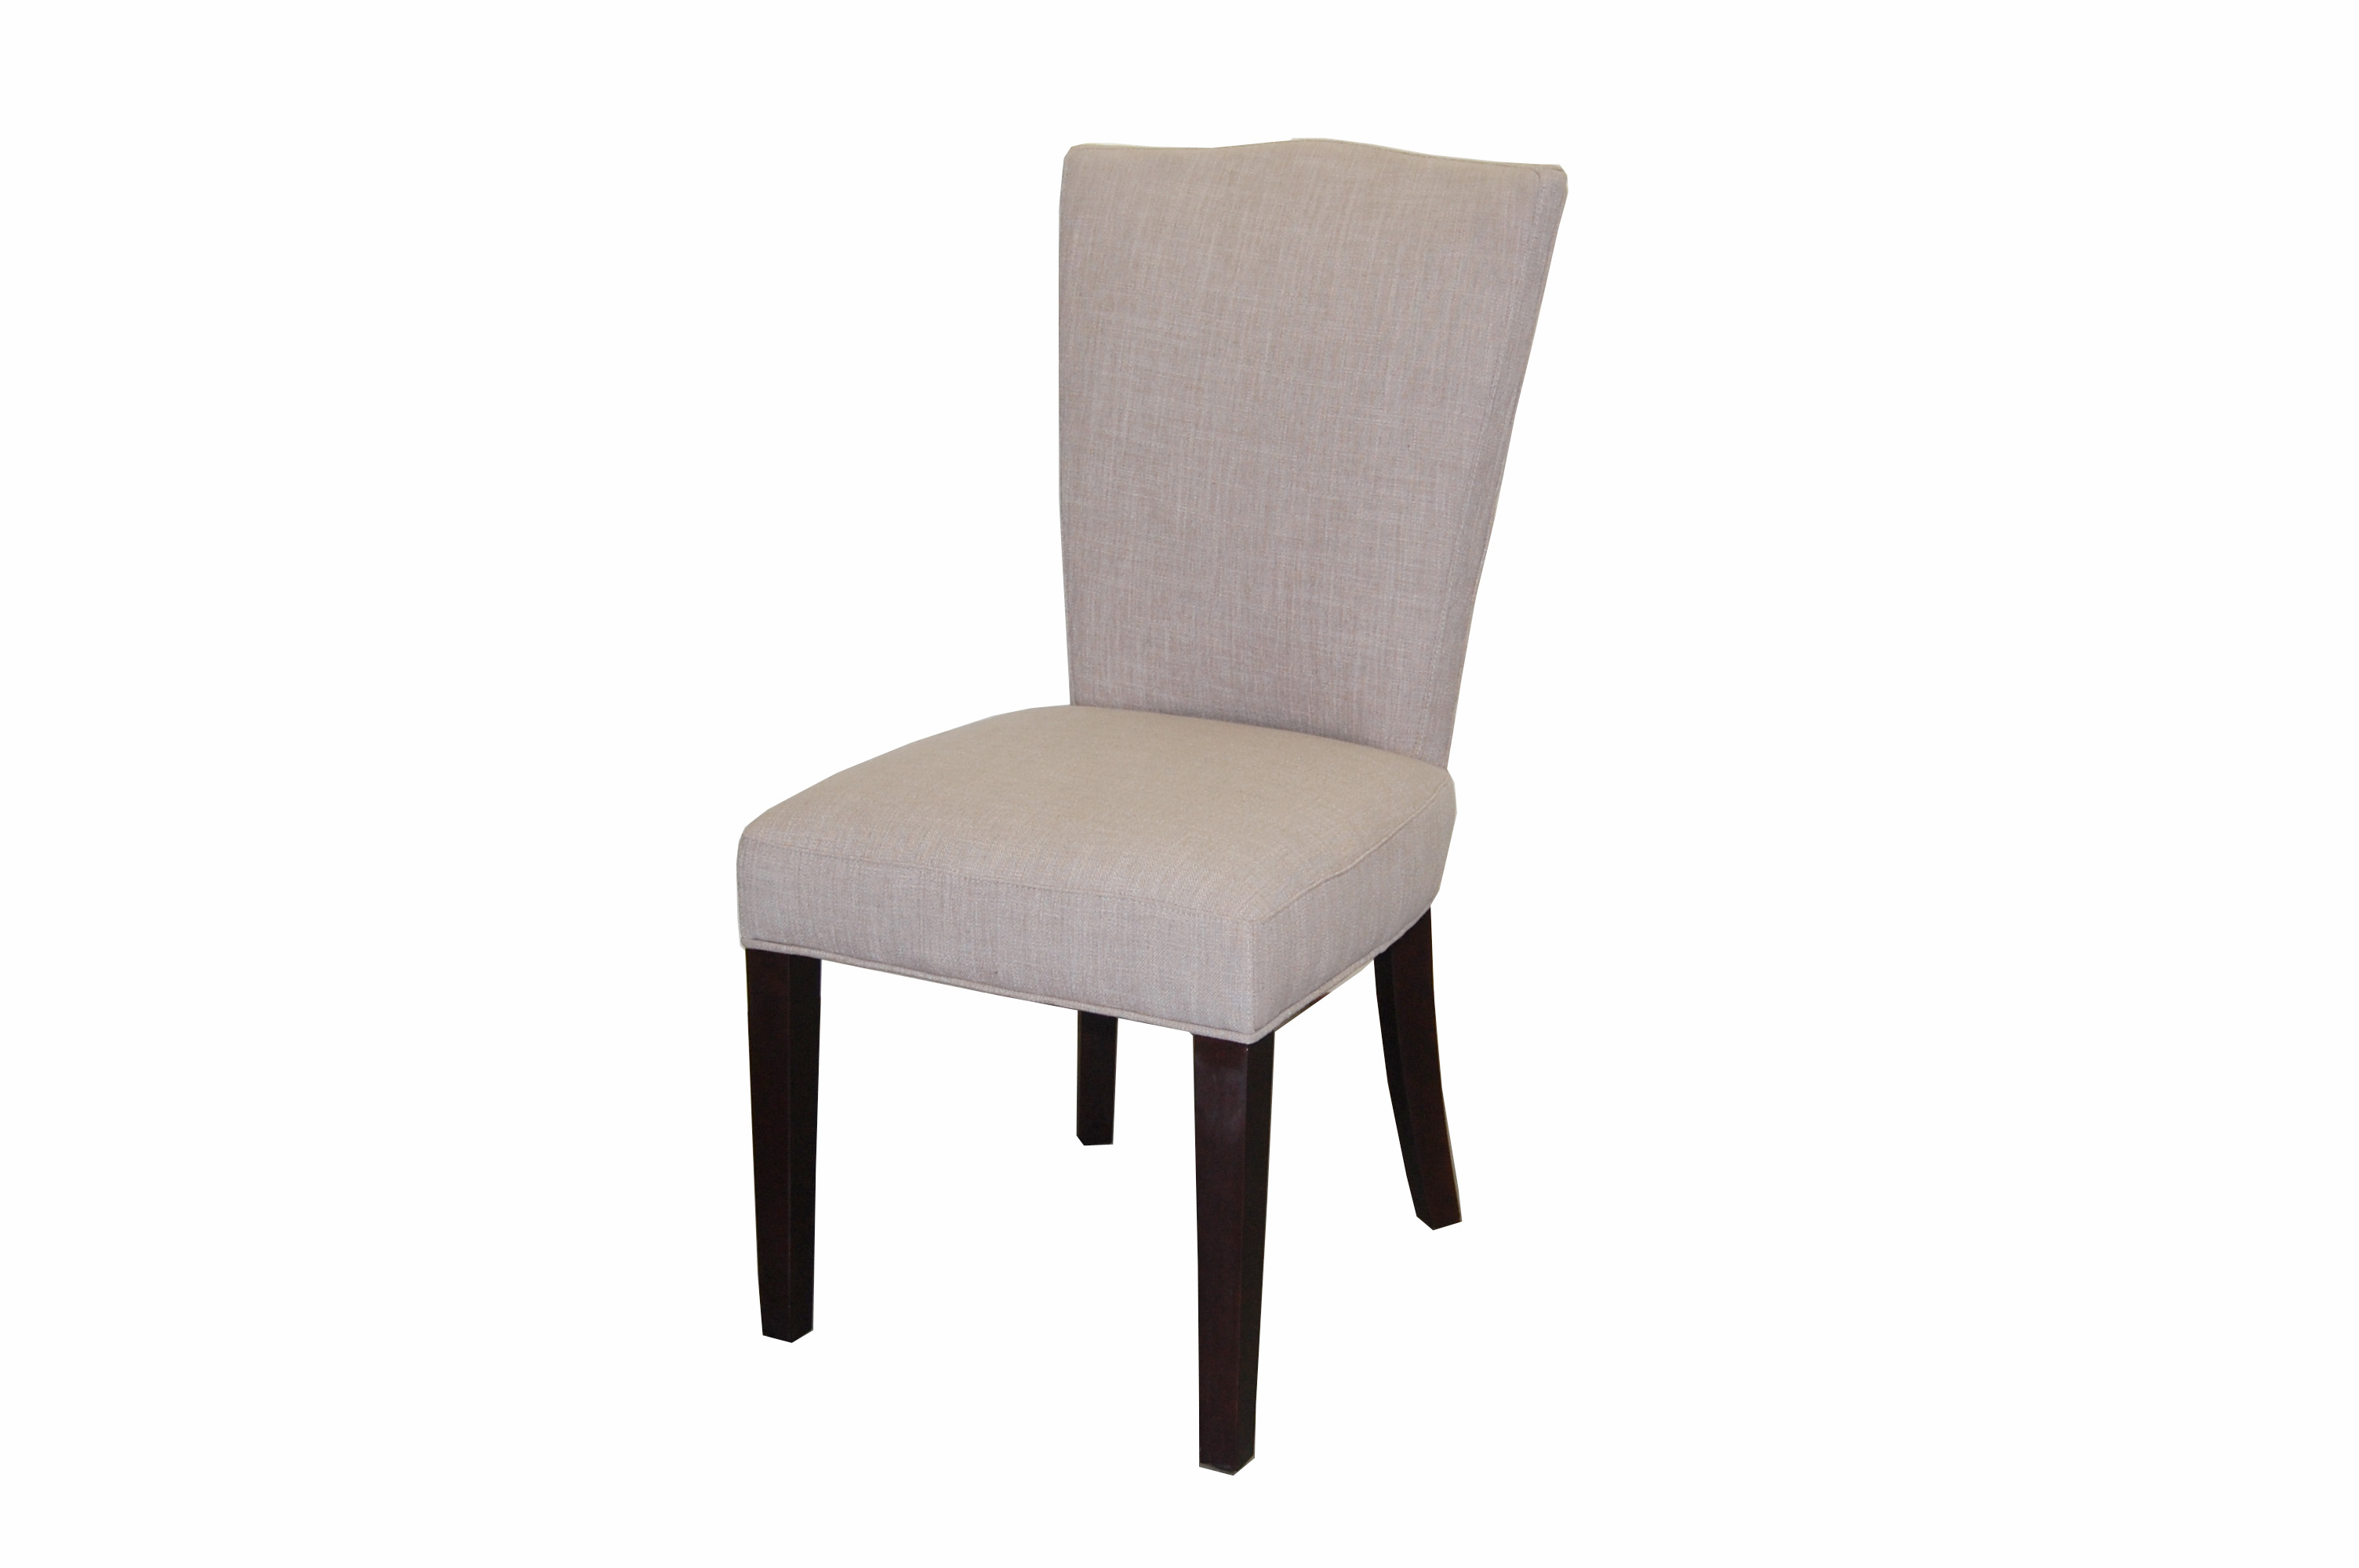 Dayton Dining Chair In Light Grey Fabric FAB168-3